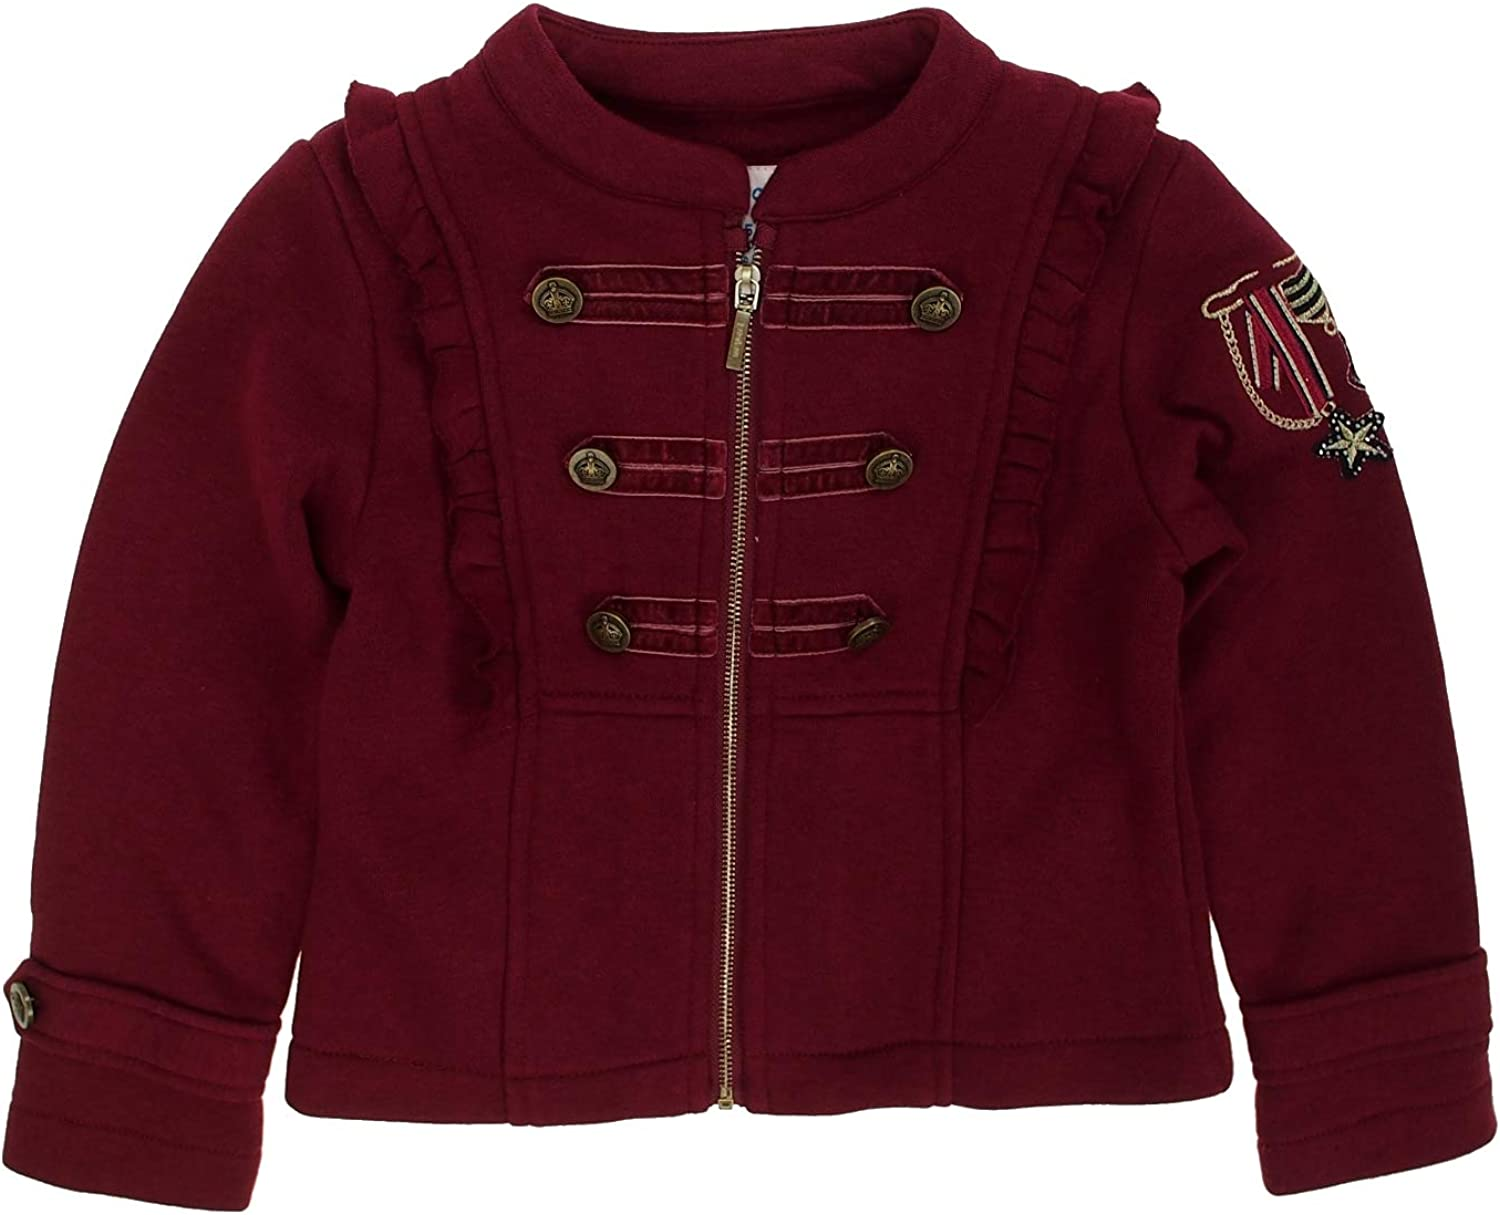 Mayoral - Fleece Jacket Soldering for Special Campaign 4480 Girls Raspberry